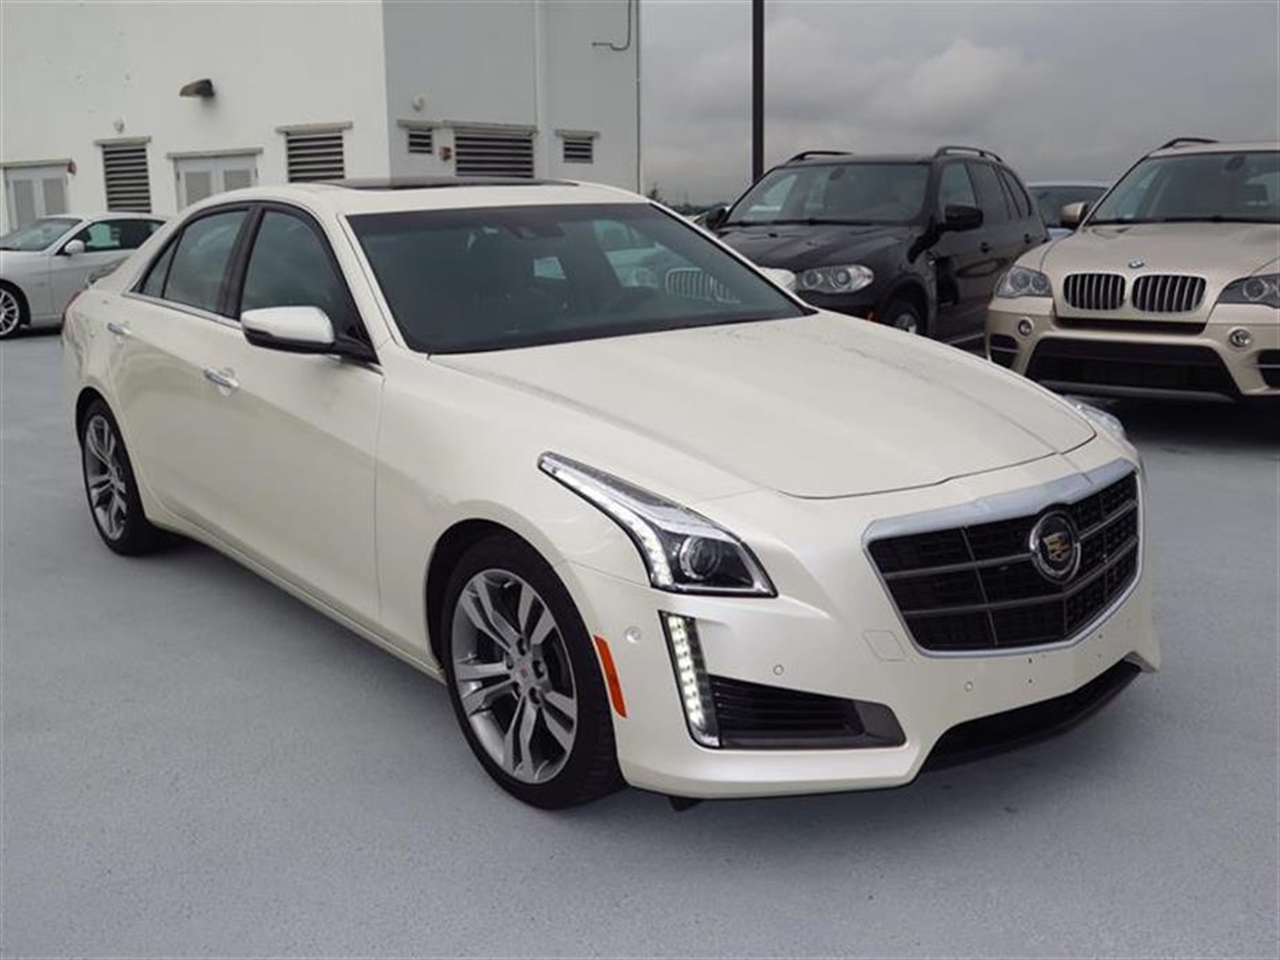 2014 CADILLAC CTS 4dr Sdn 36L Twin Turbo Vsport Premium RWD 11775 miles Adaptive Remote Start Ai